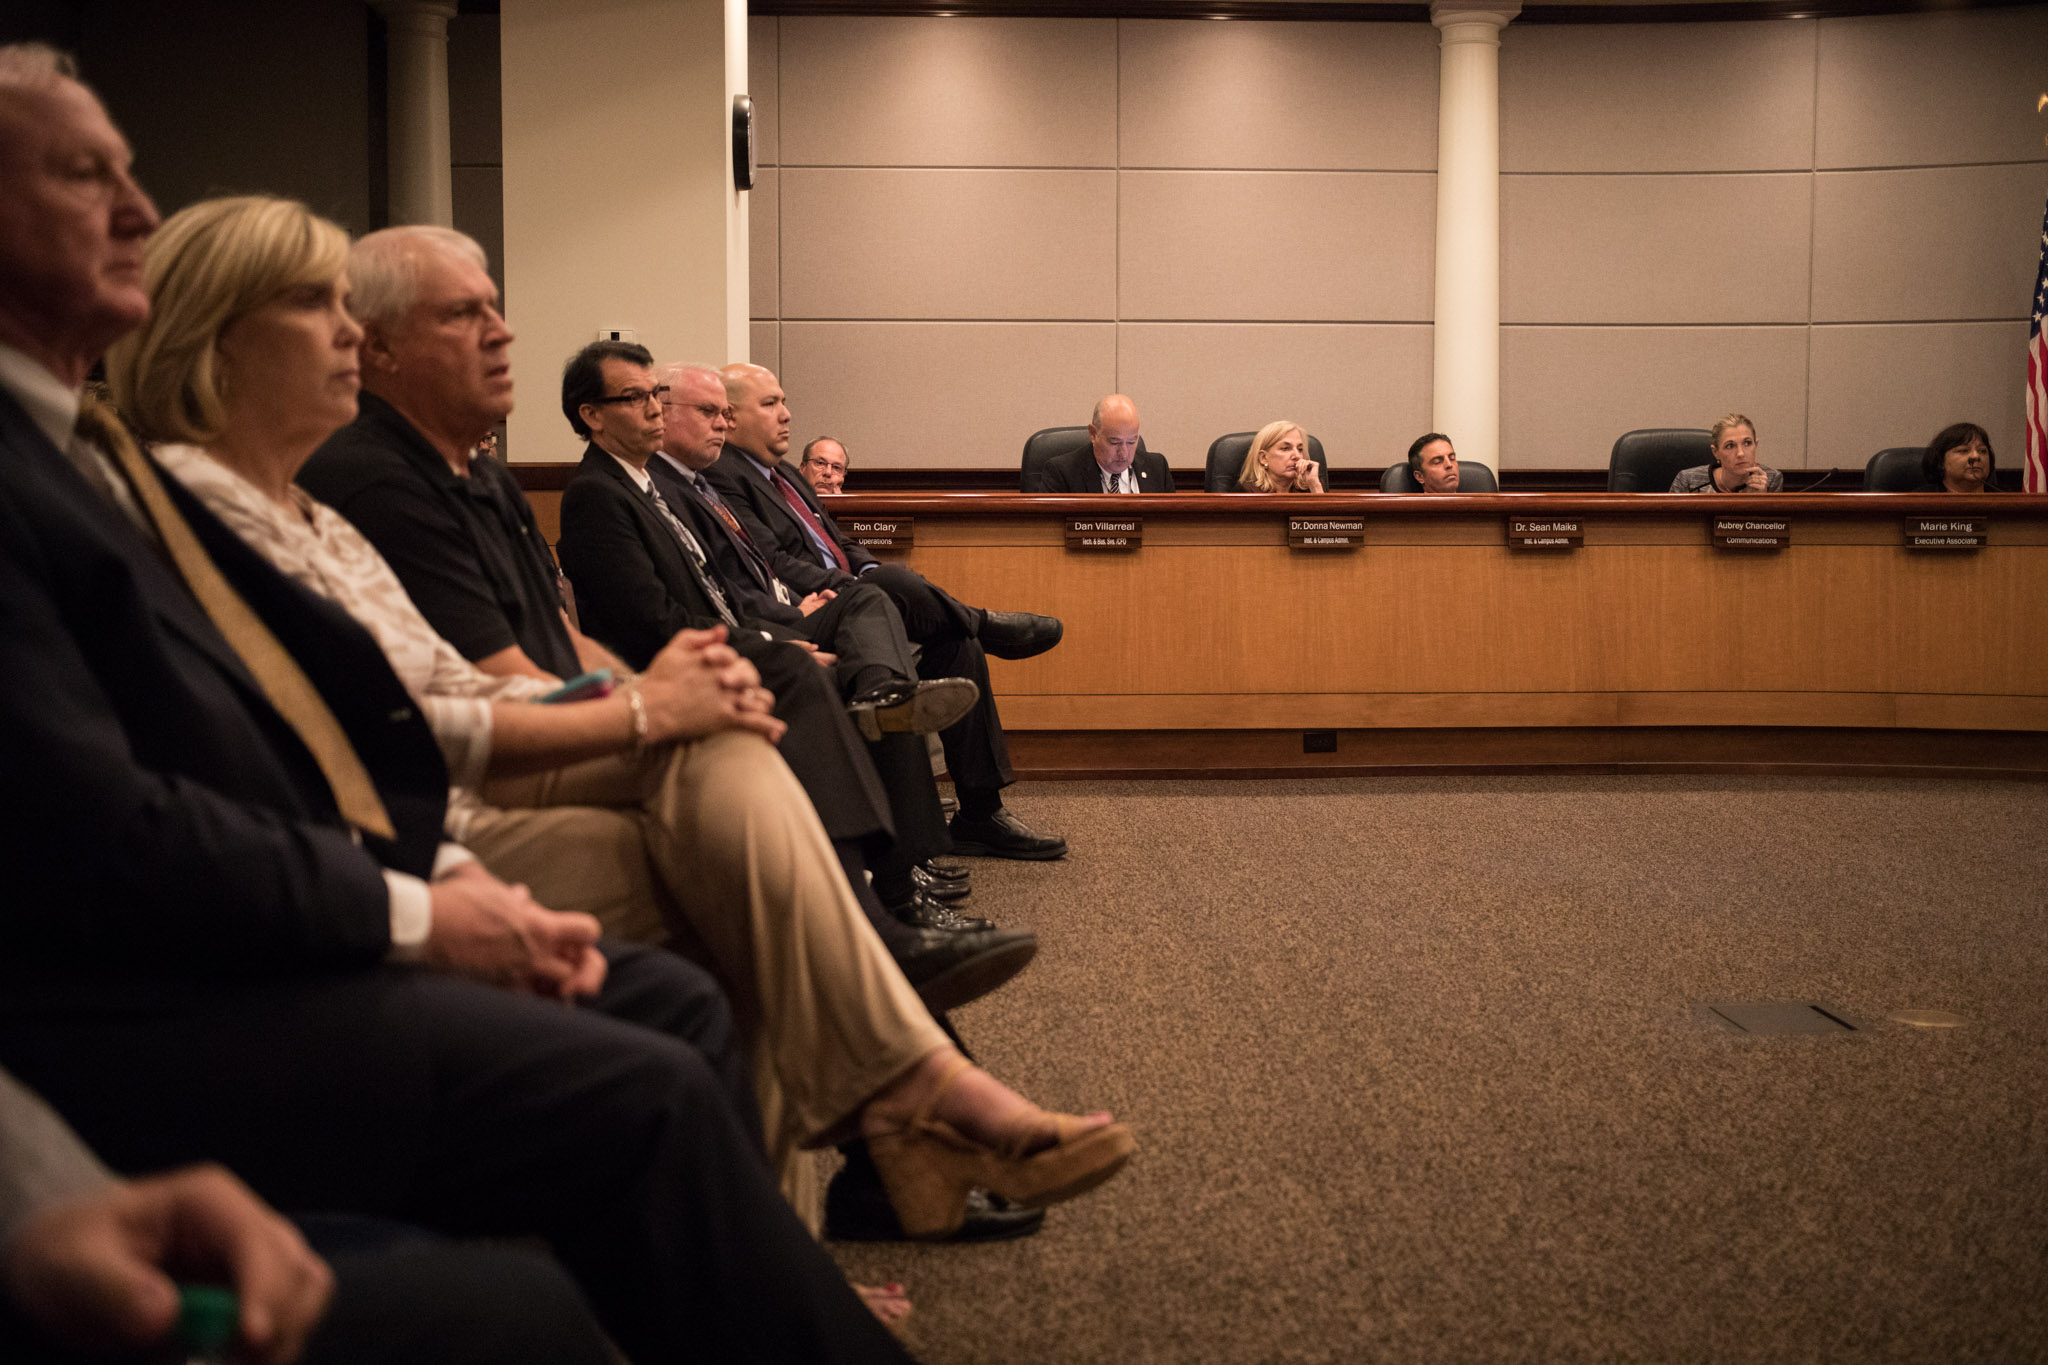 The NEISD board convenes to discuss the possibility of changing the name of Robert E. Lee High School.